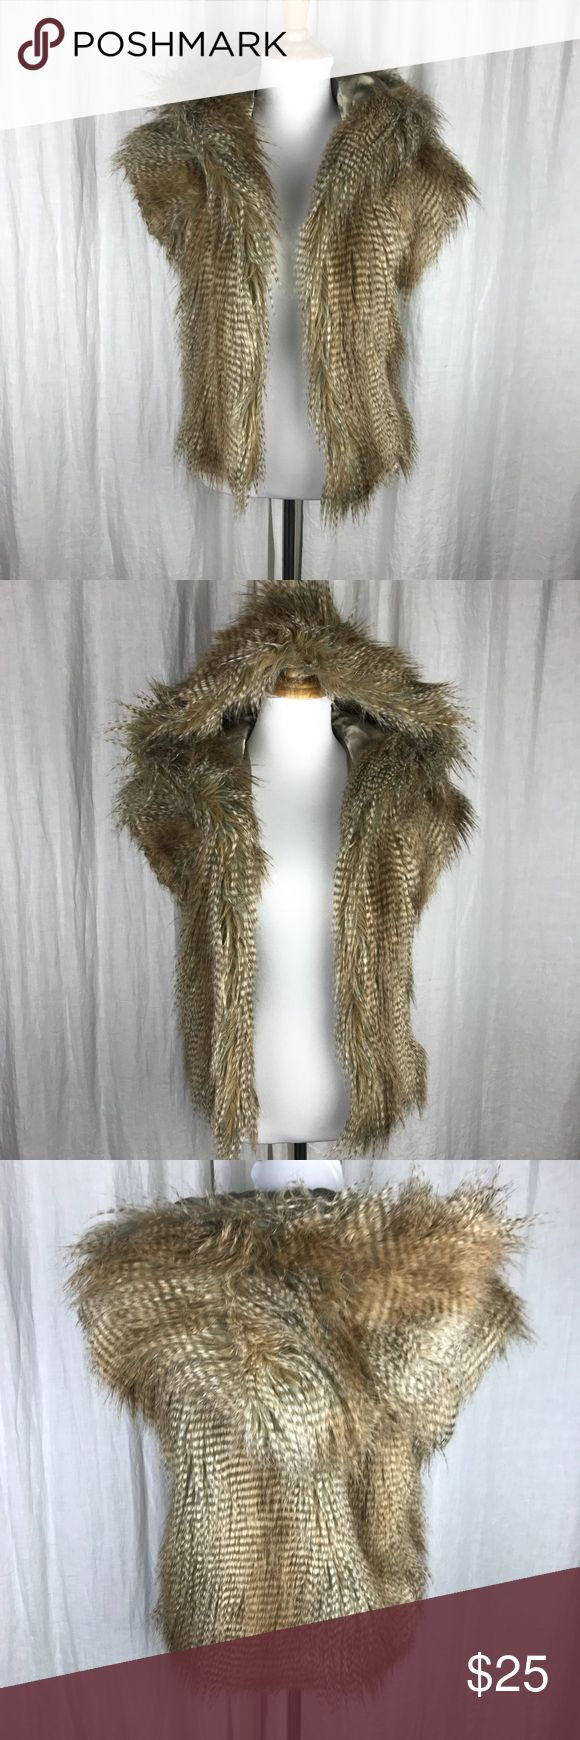 BCBGeneration Faux Fur Vest BCBGeneration Faux Fur Vest. Super cute and on trend! Hooded vest with pockets! Excellent condition and great for winter! BCBGeneration Jackets & Coats Vests